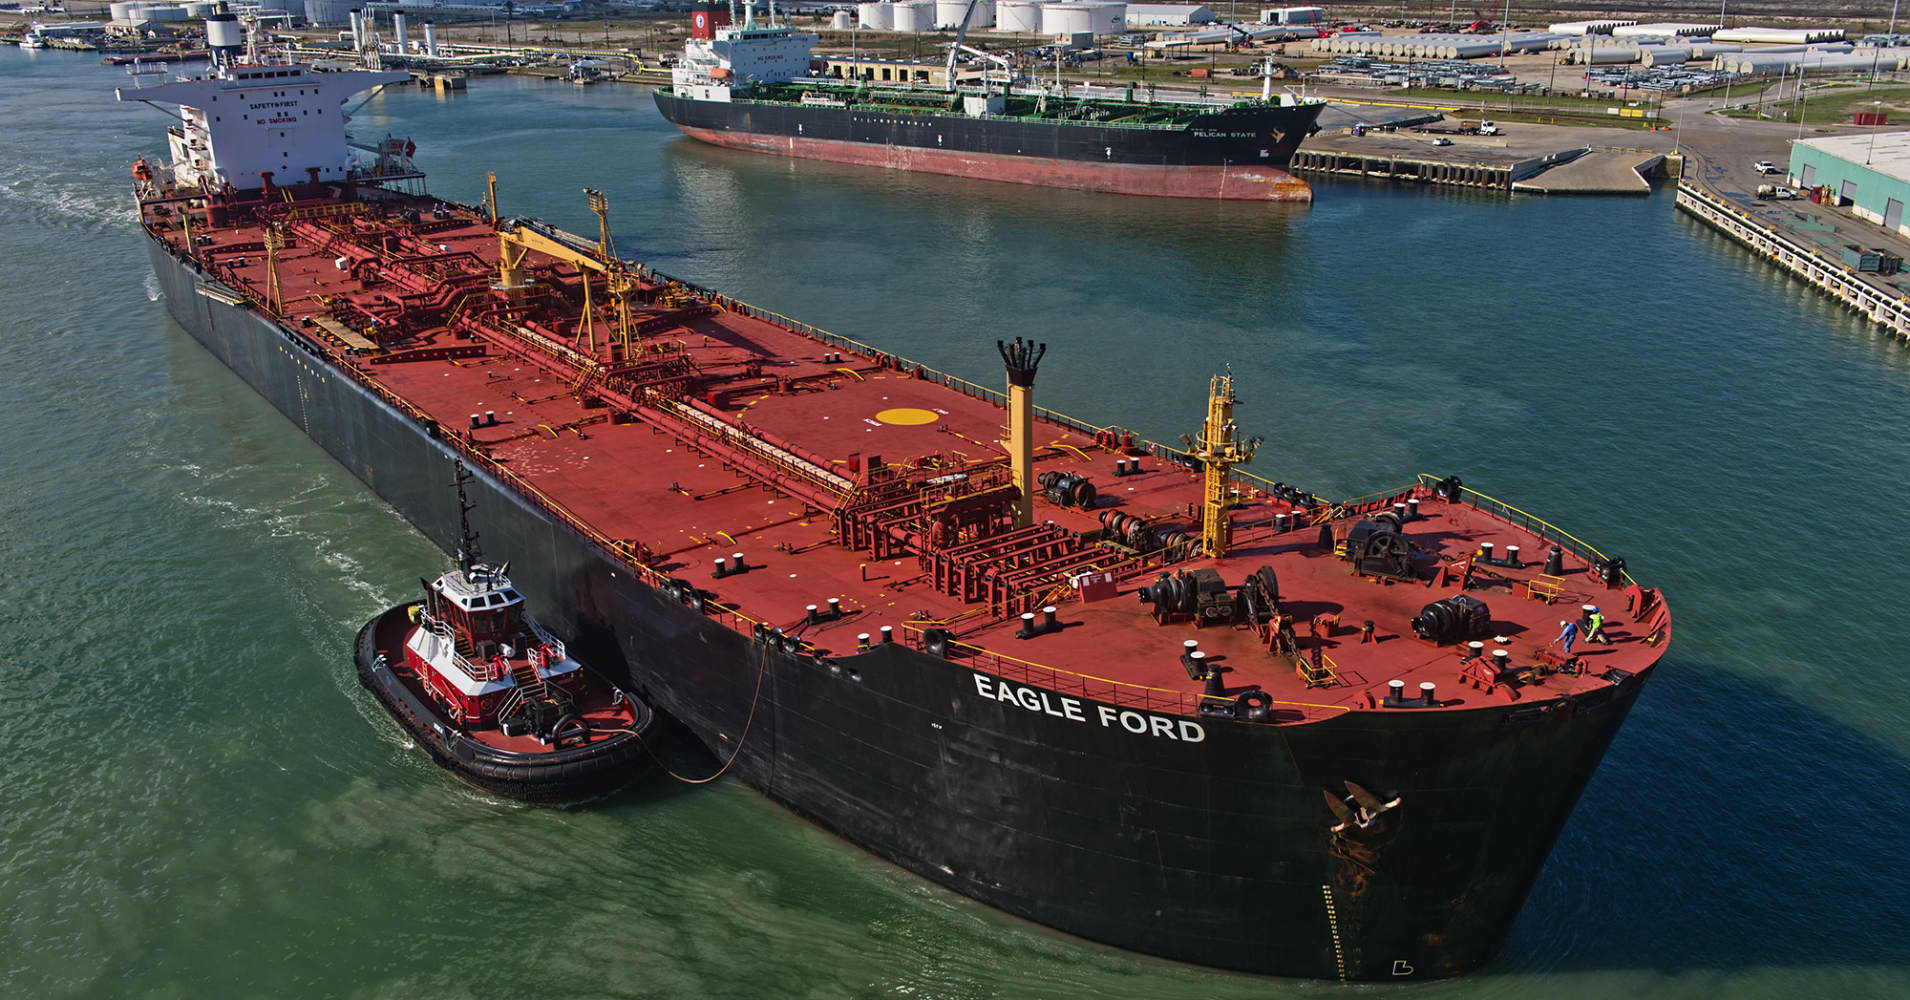 US crude oil exports hit a record last week at 3.6 million barrels a day